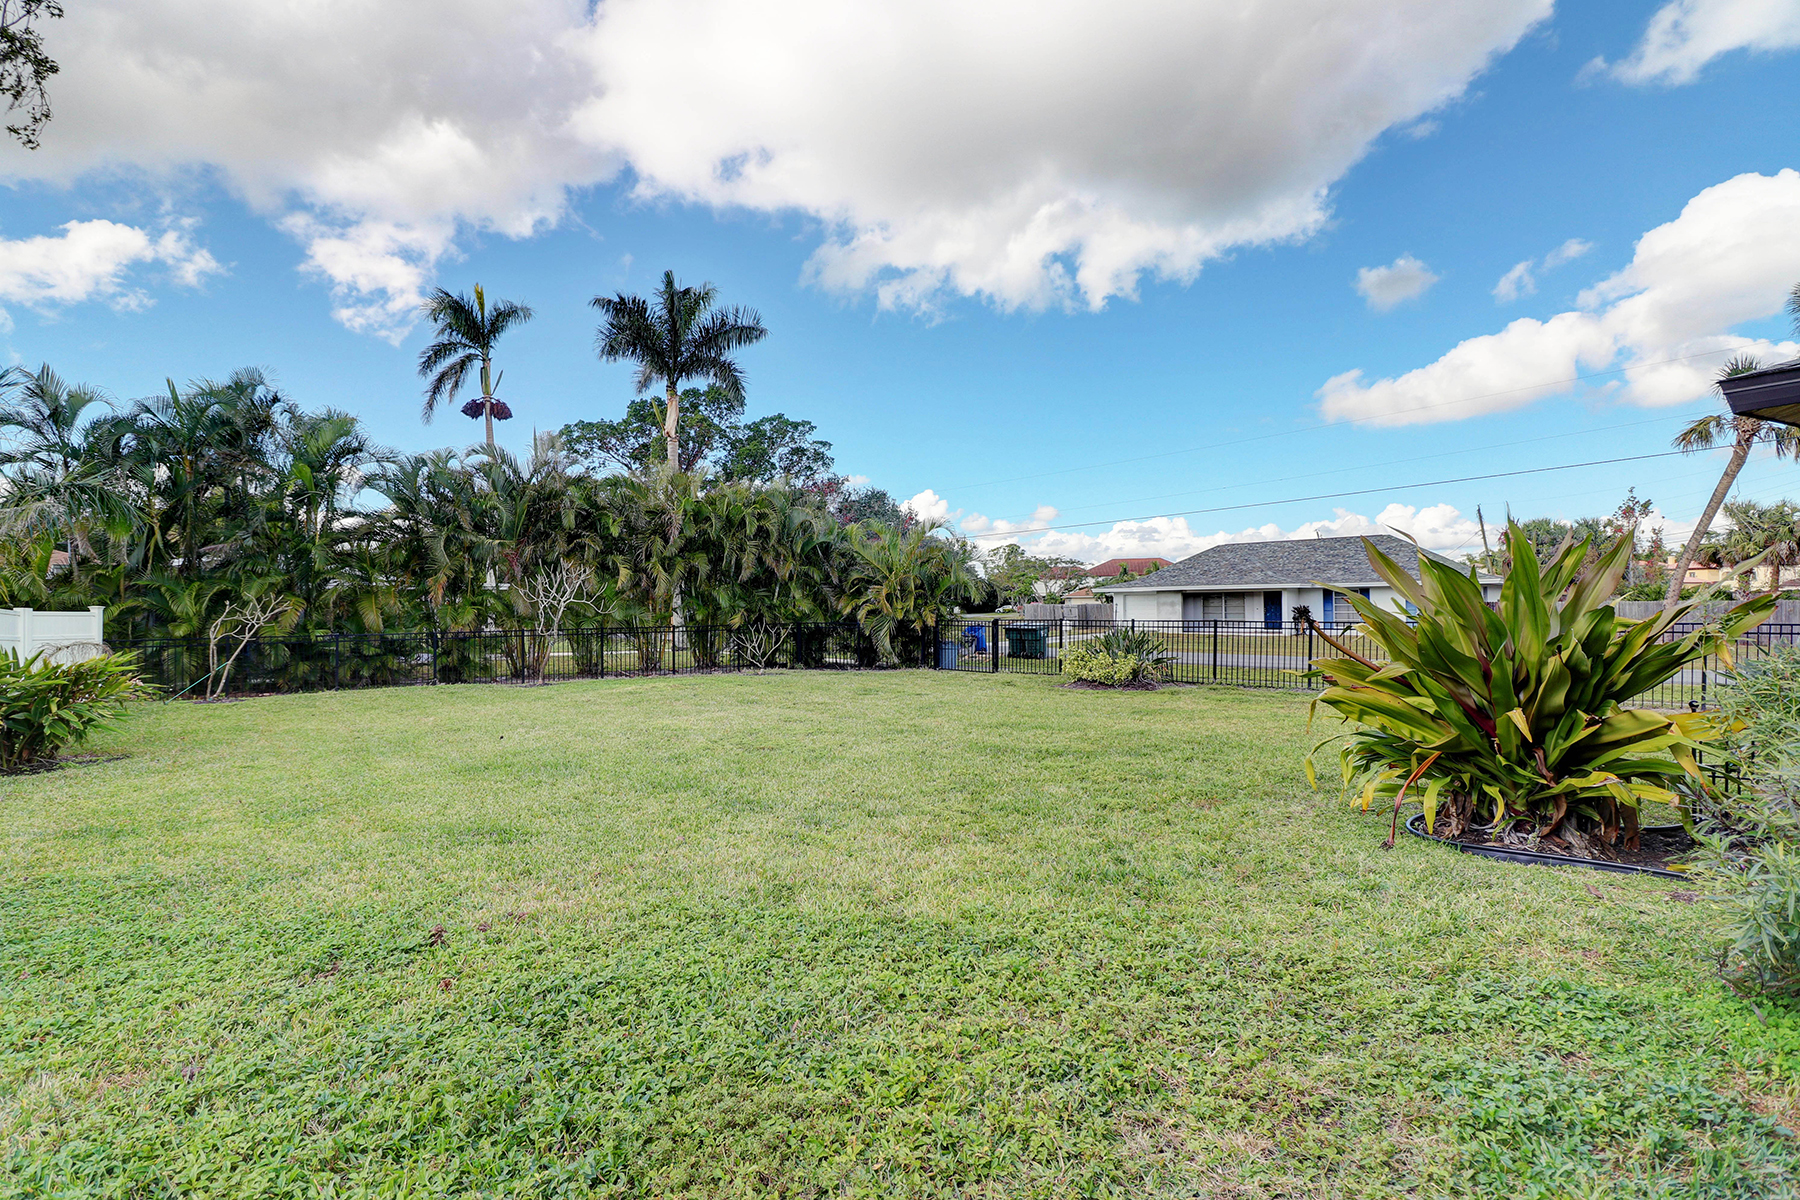 Additional photo for property listing at 11870 Mcgregor Blvd , Fort Myers, FL 33919 11870  Mcgregor Blvd,  Fort Myers, Florida 33919 United States